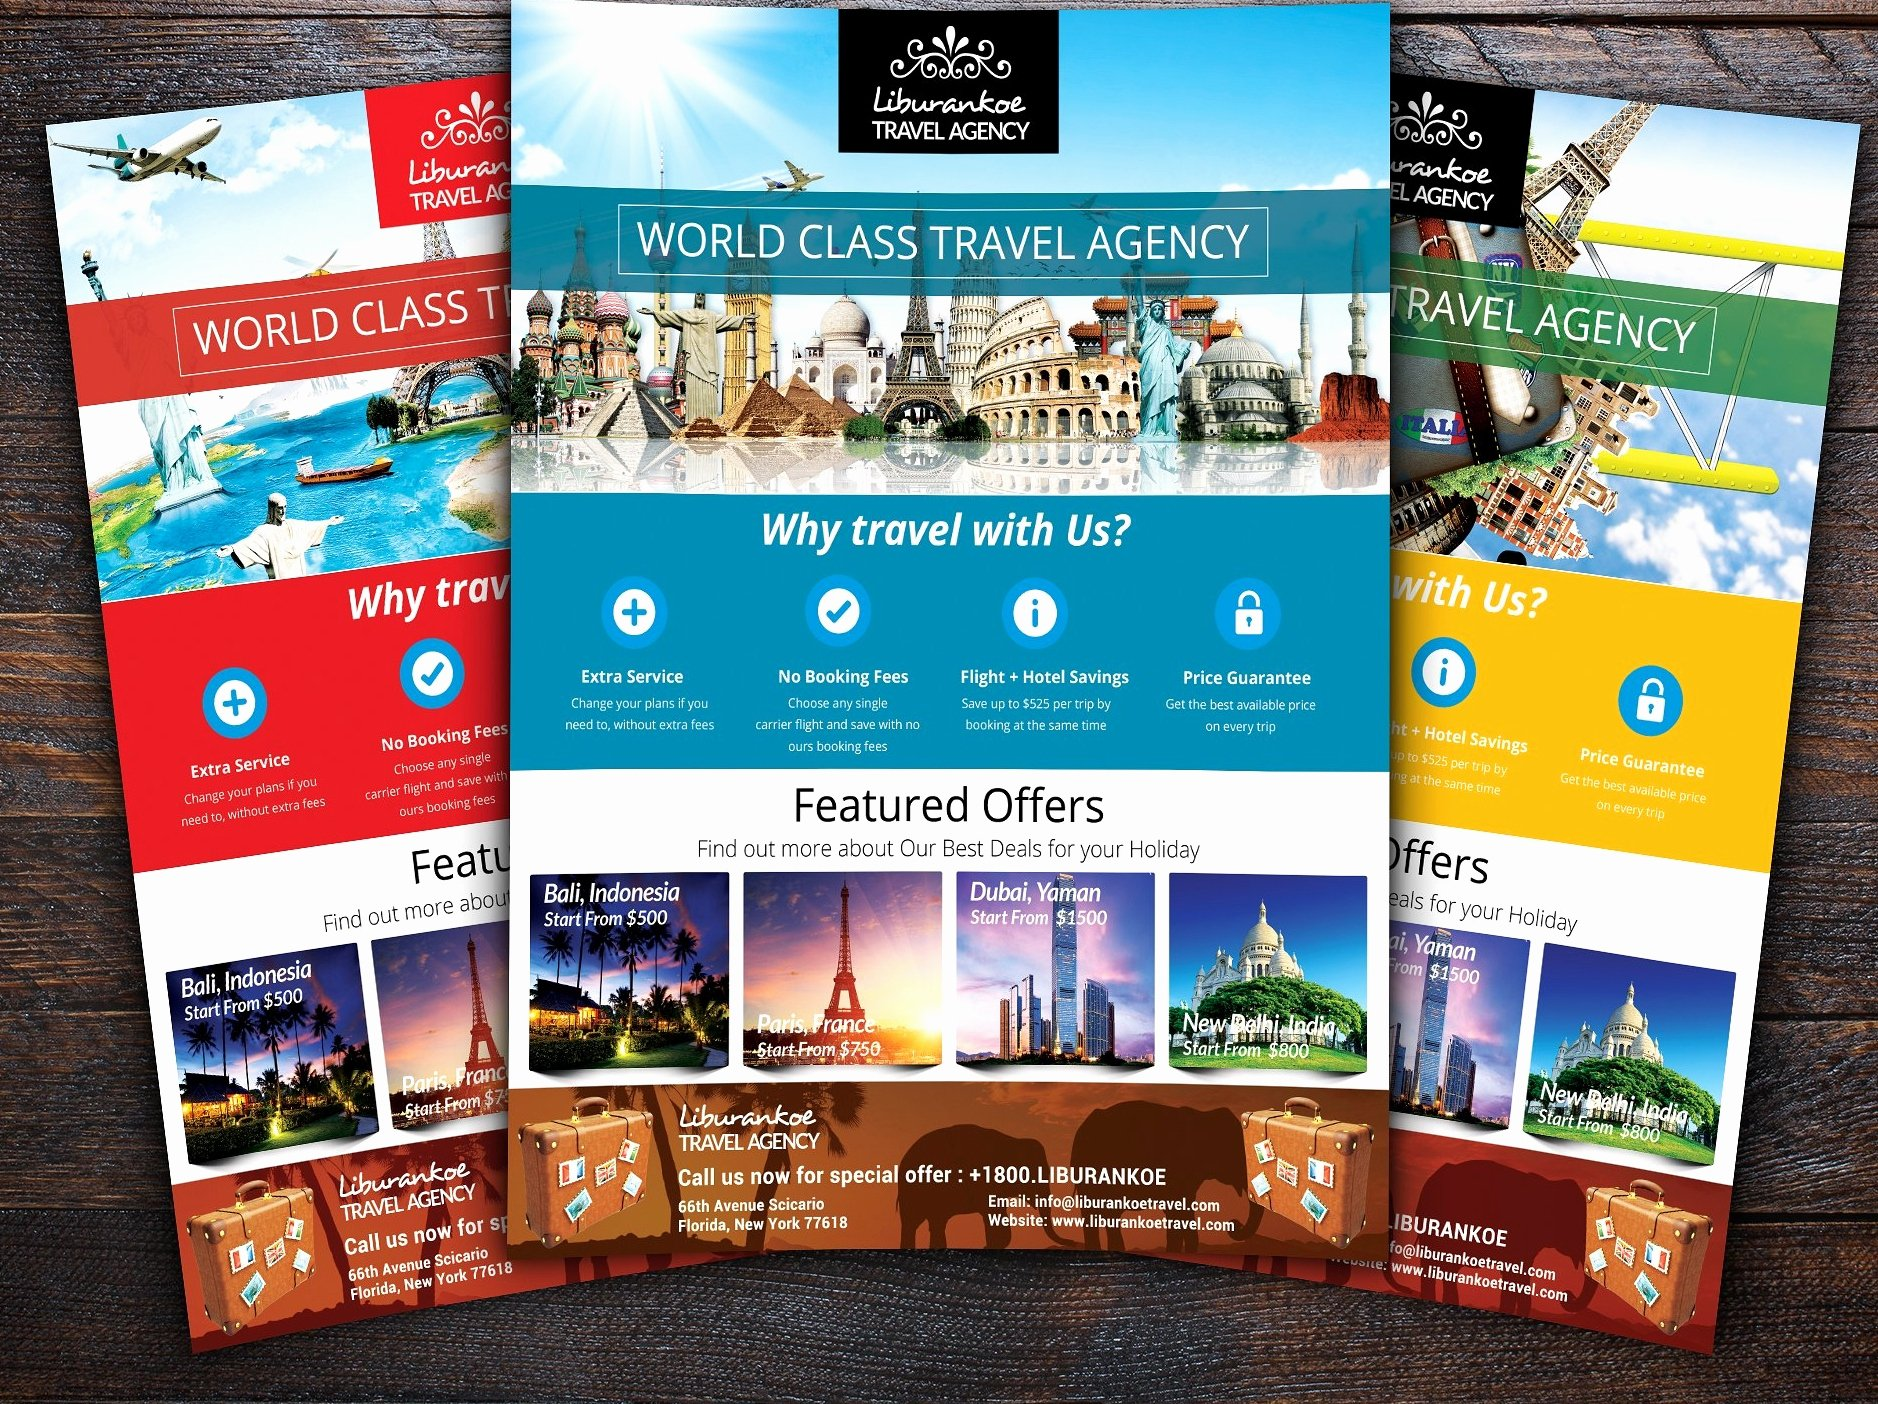 Travel Agency Advertising Samples Luxury 8 Agency Flyer Designs Psd Ai Indesign Vector Eps format Download